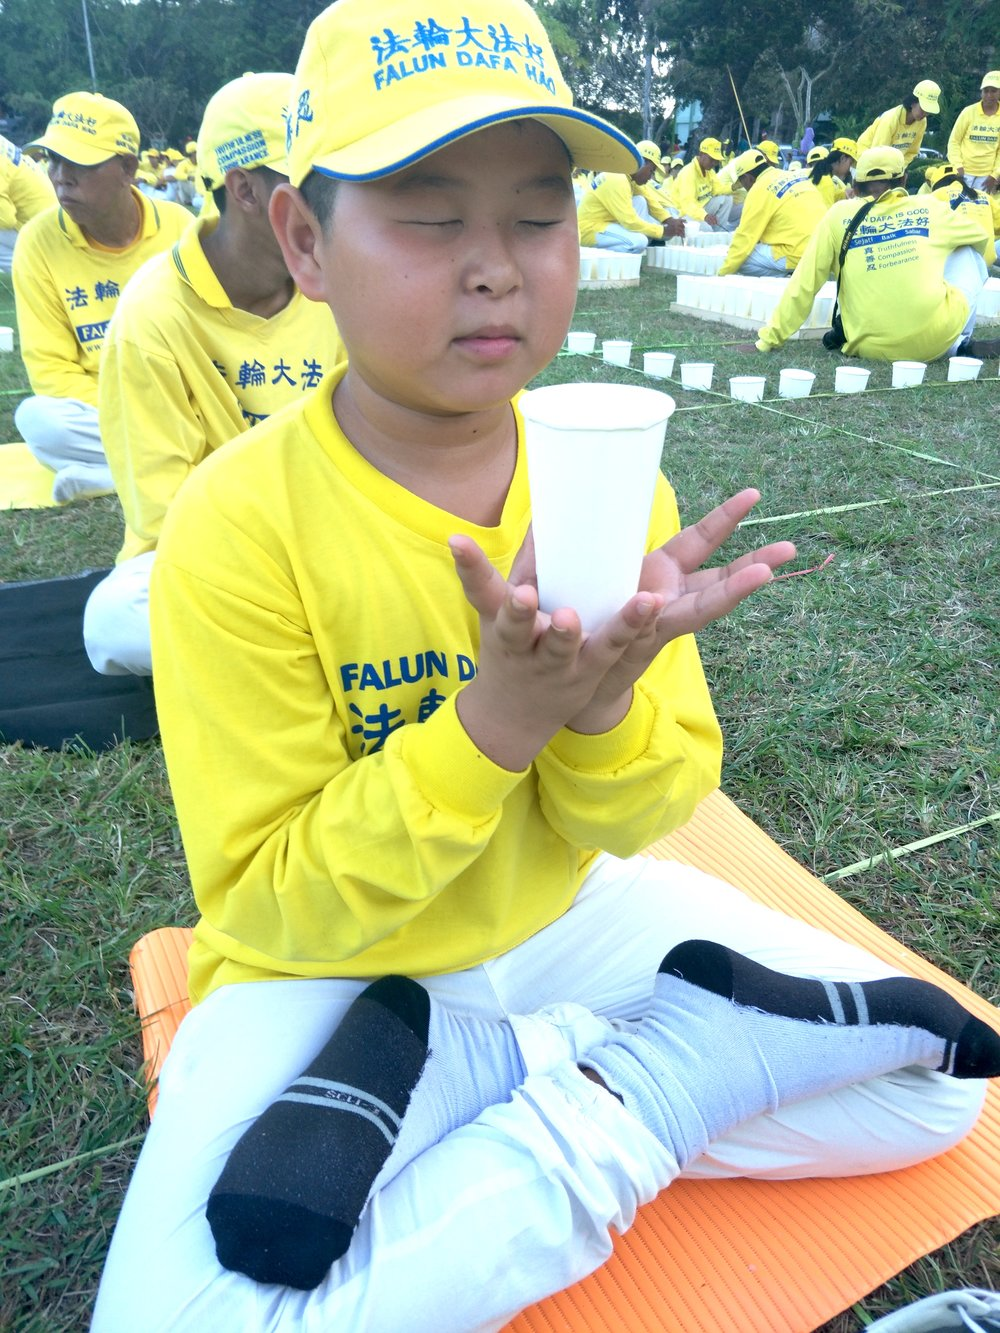 Mingyuan, Ma Xiaoqin's younger son, at a Falun Gong event in Indonesia on May 13, 2019 (Courtesy Ma Xiaoqin)